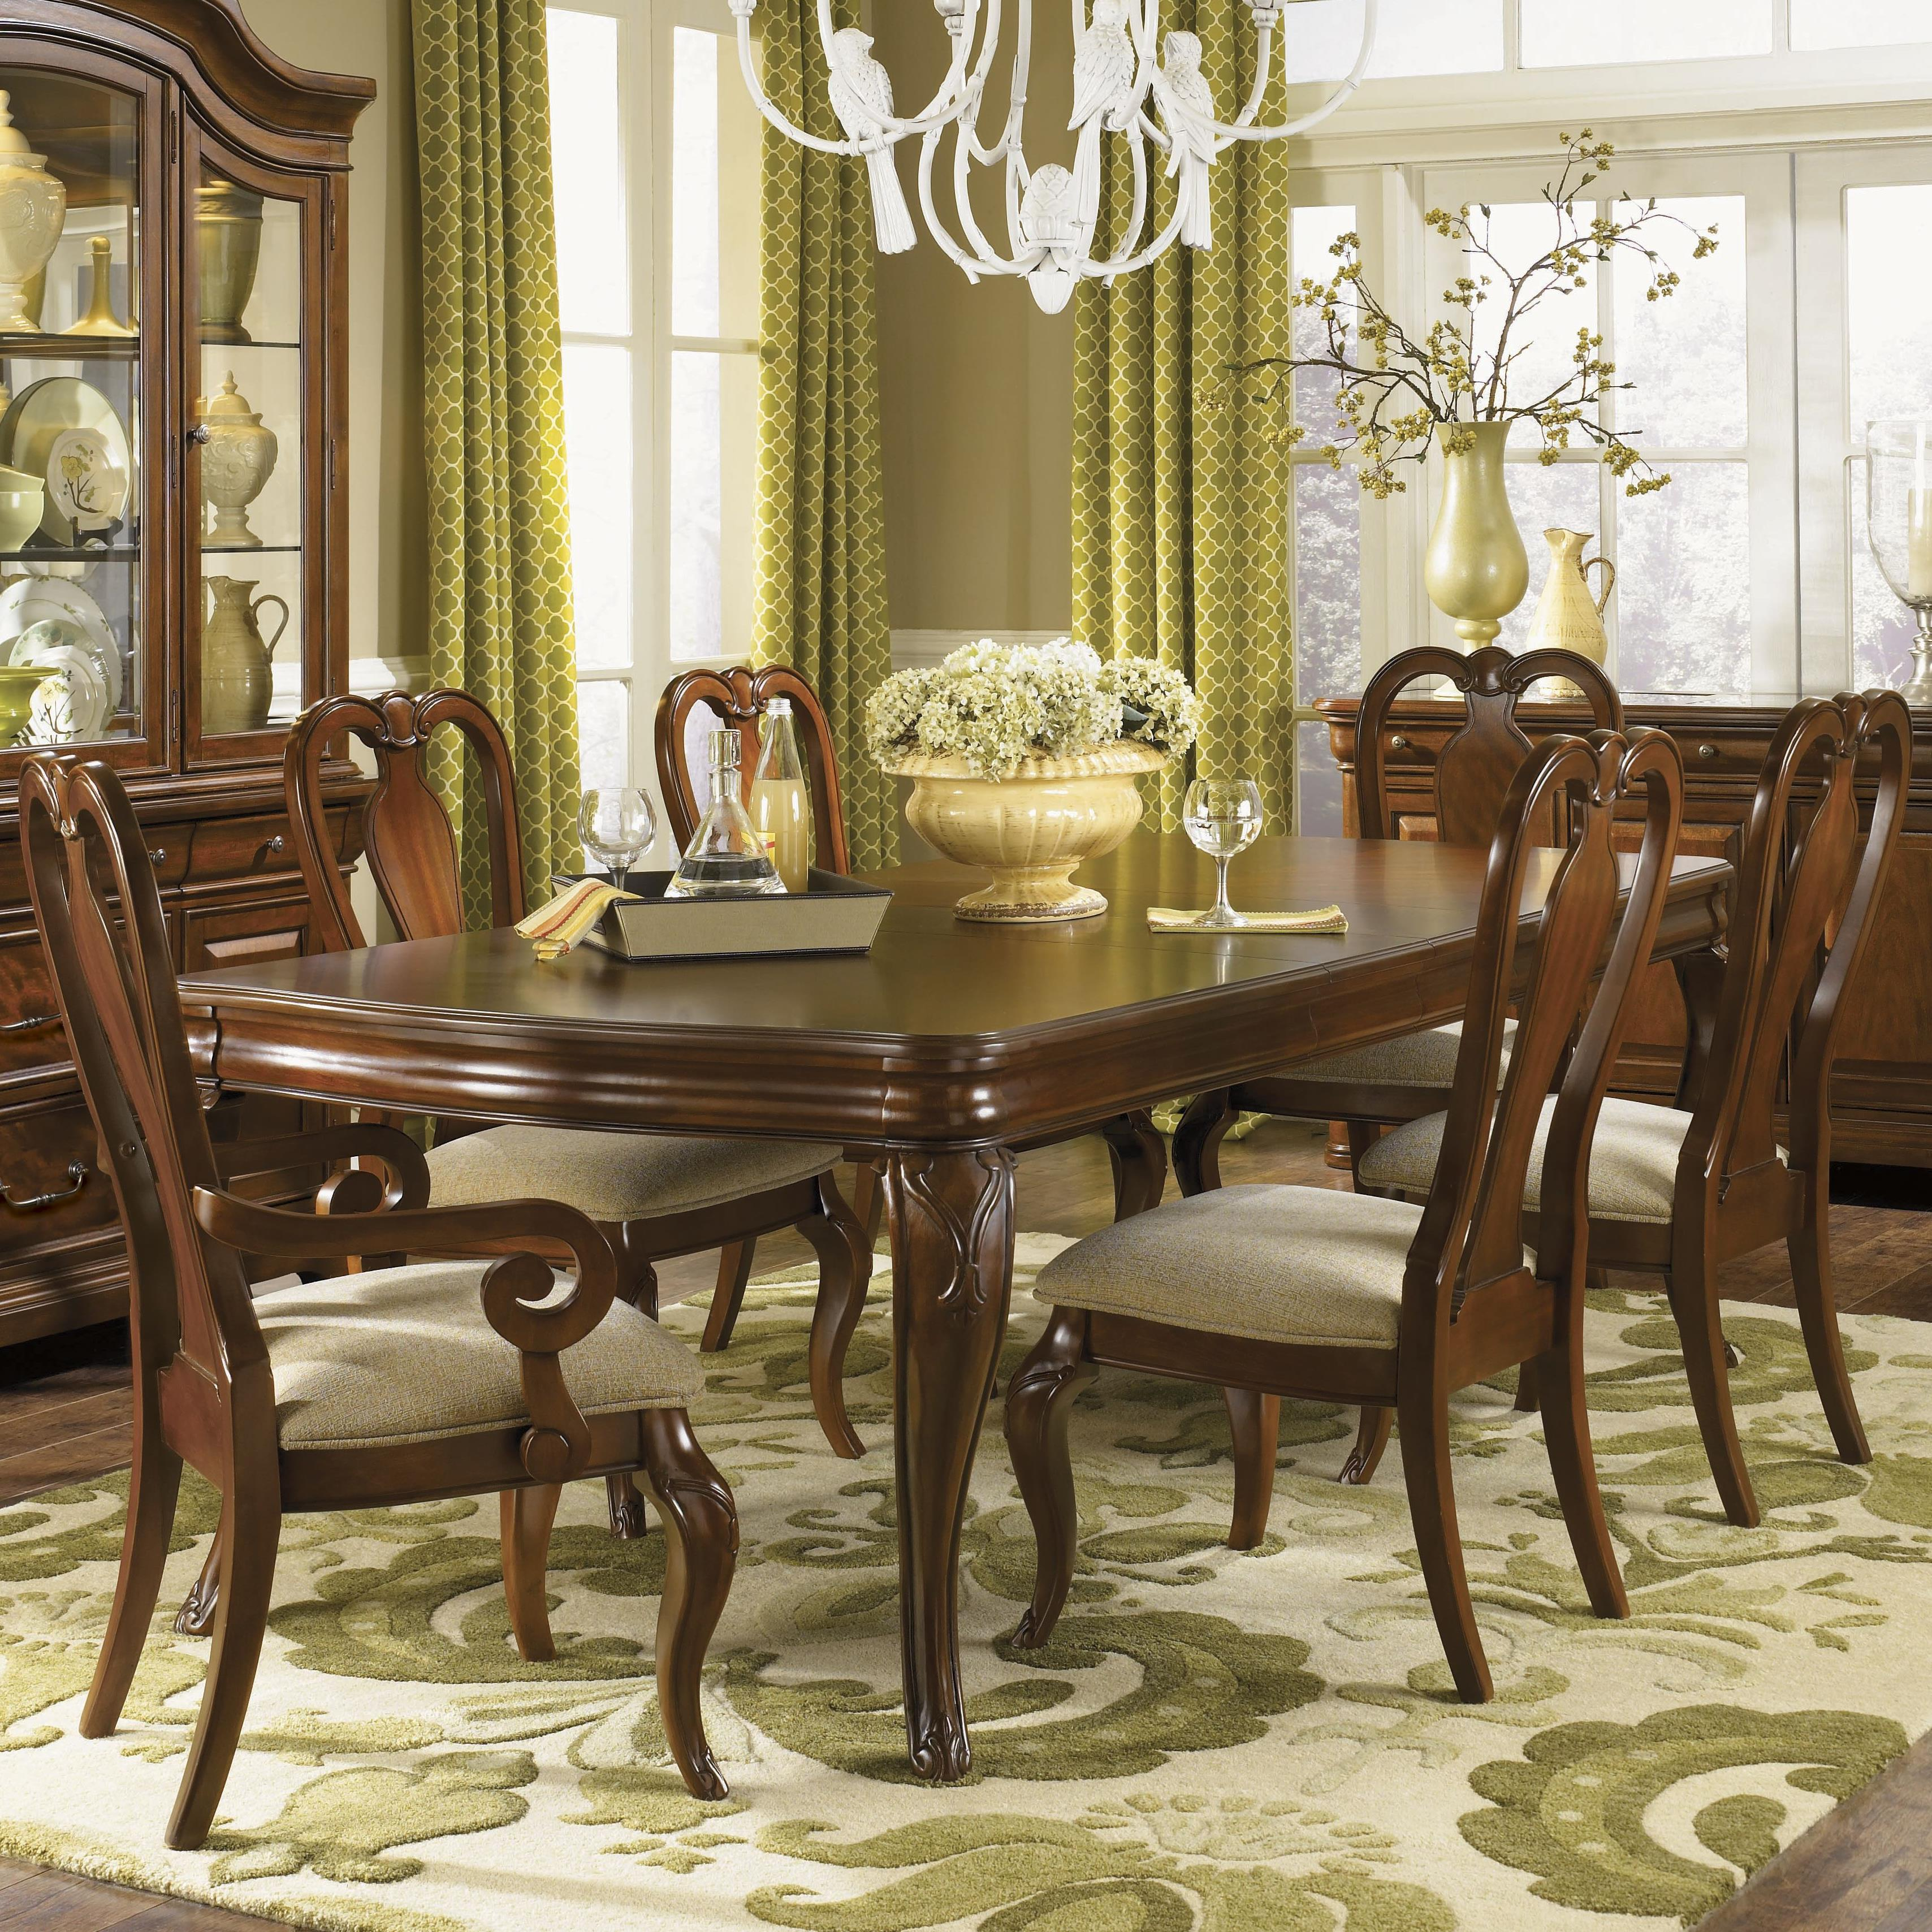 Seven Piece Dining Set With Queen Anne Chairs